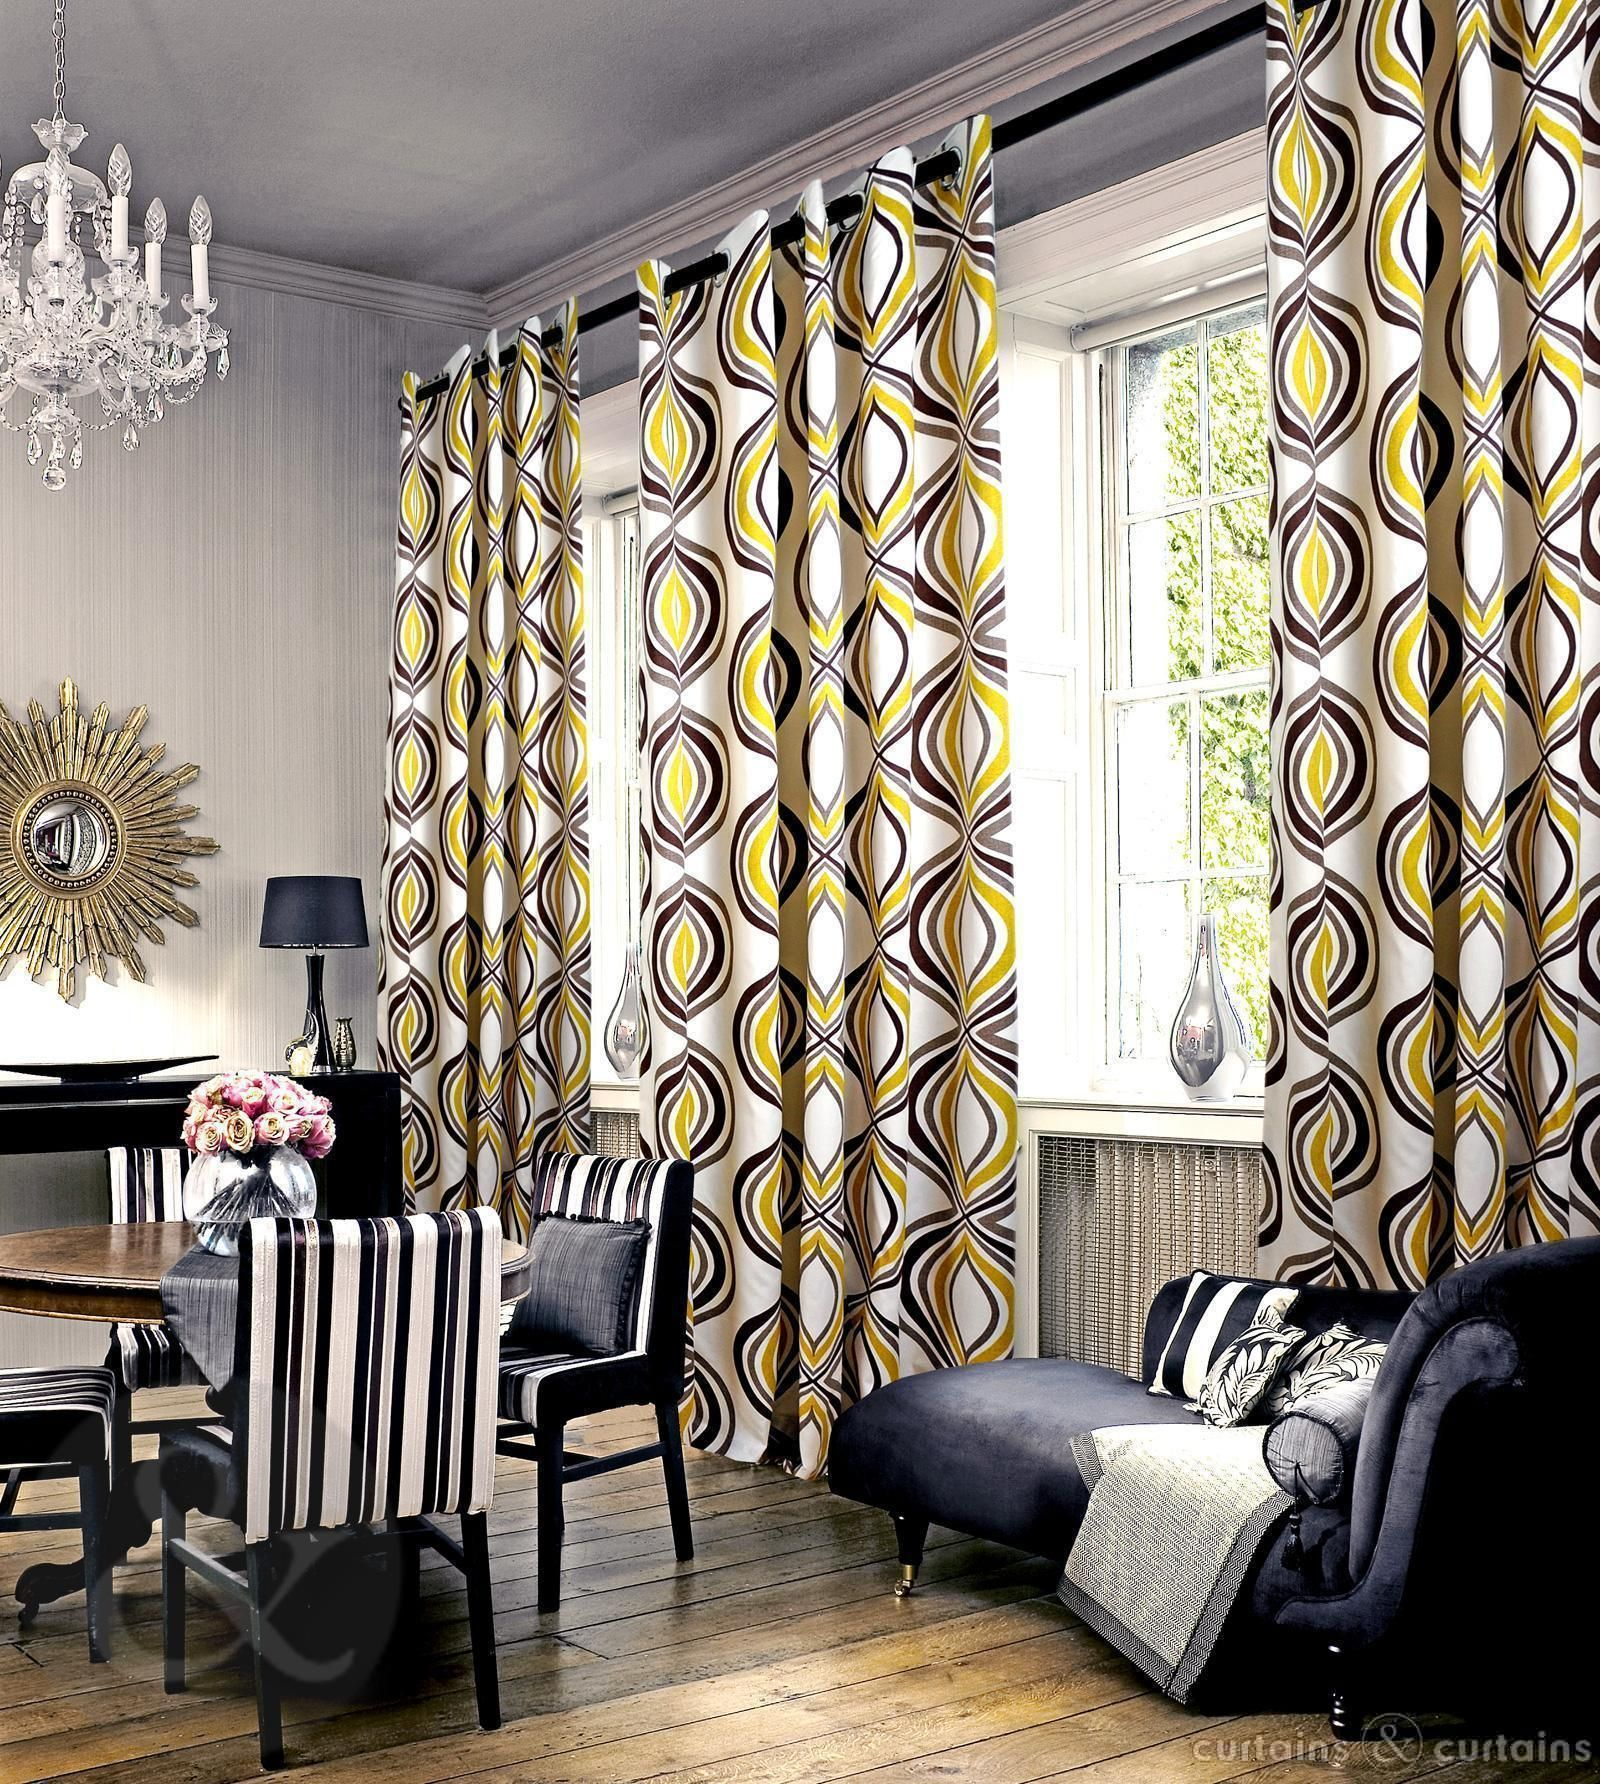 Lovely Pattern On These Mustard Yellow Curtains!